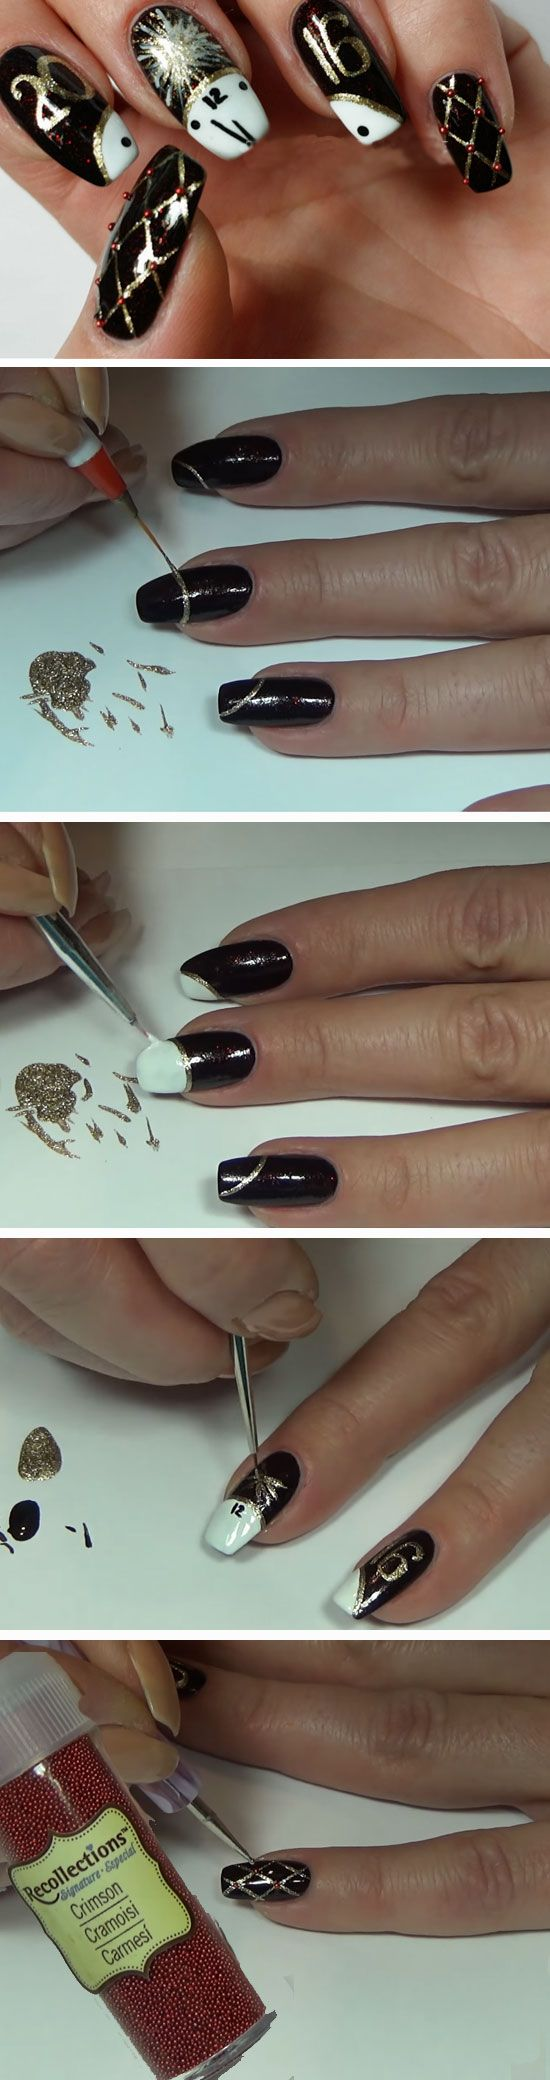 Clocks + Bling| Easy New Years Eve Nail Designs | Beautiful Glitter Nails Designs Bling